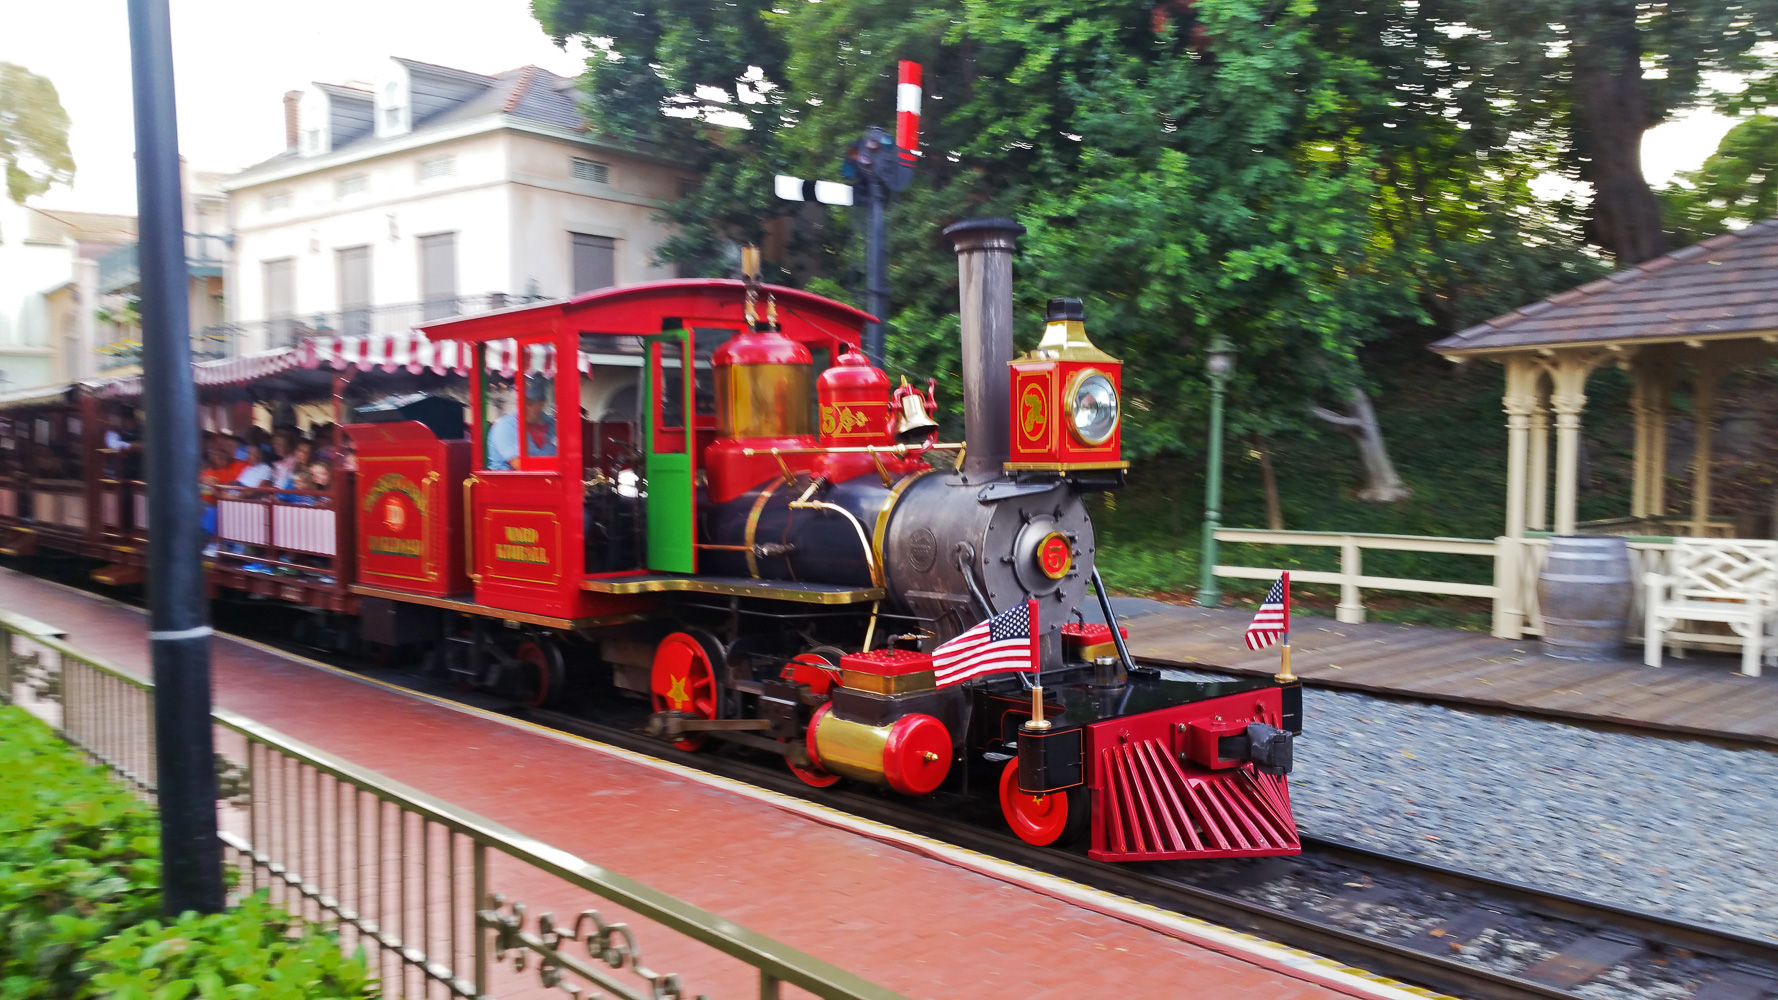 Disneyland train has arrived